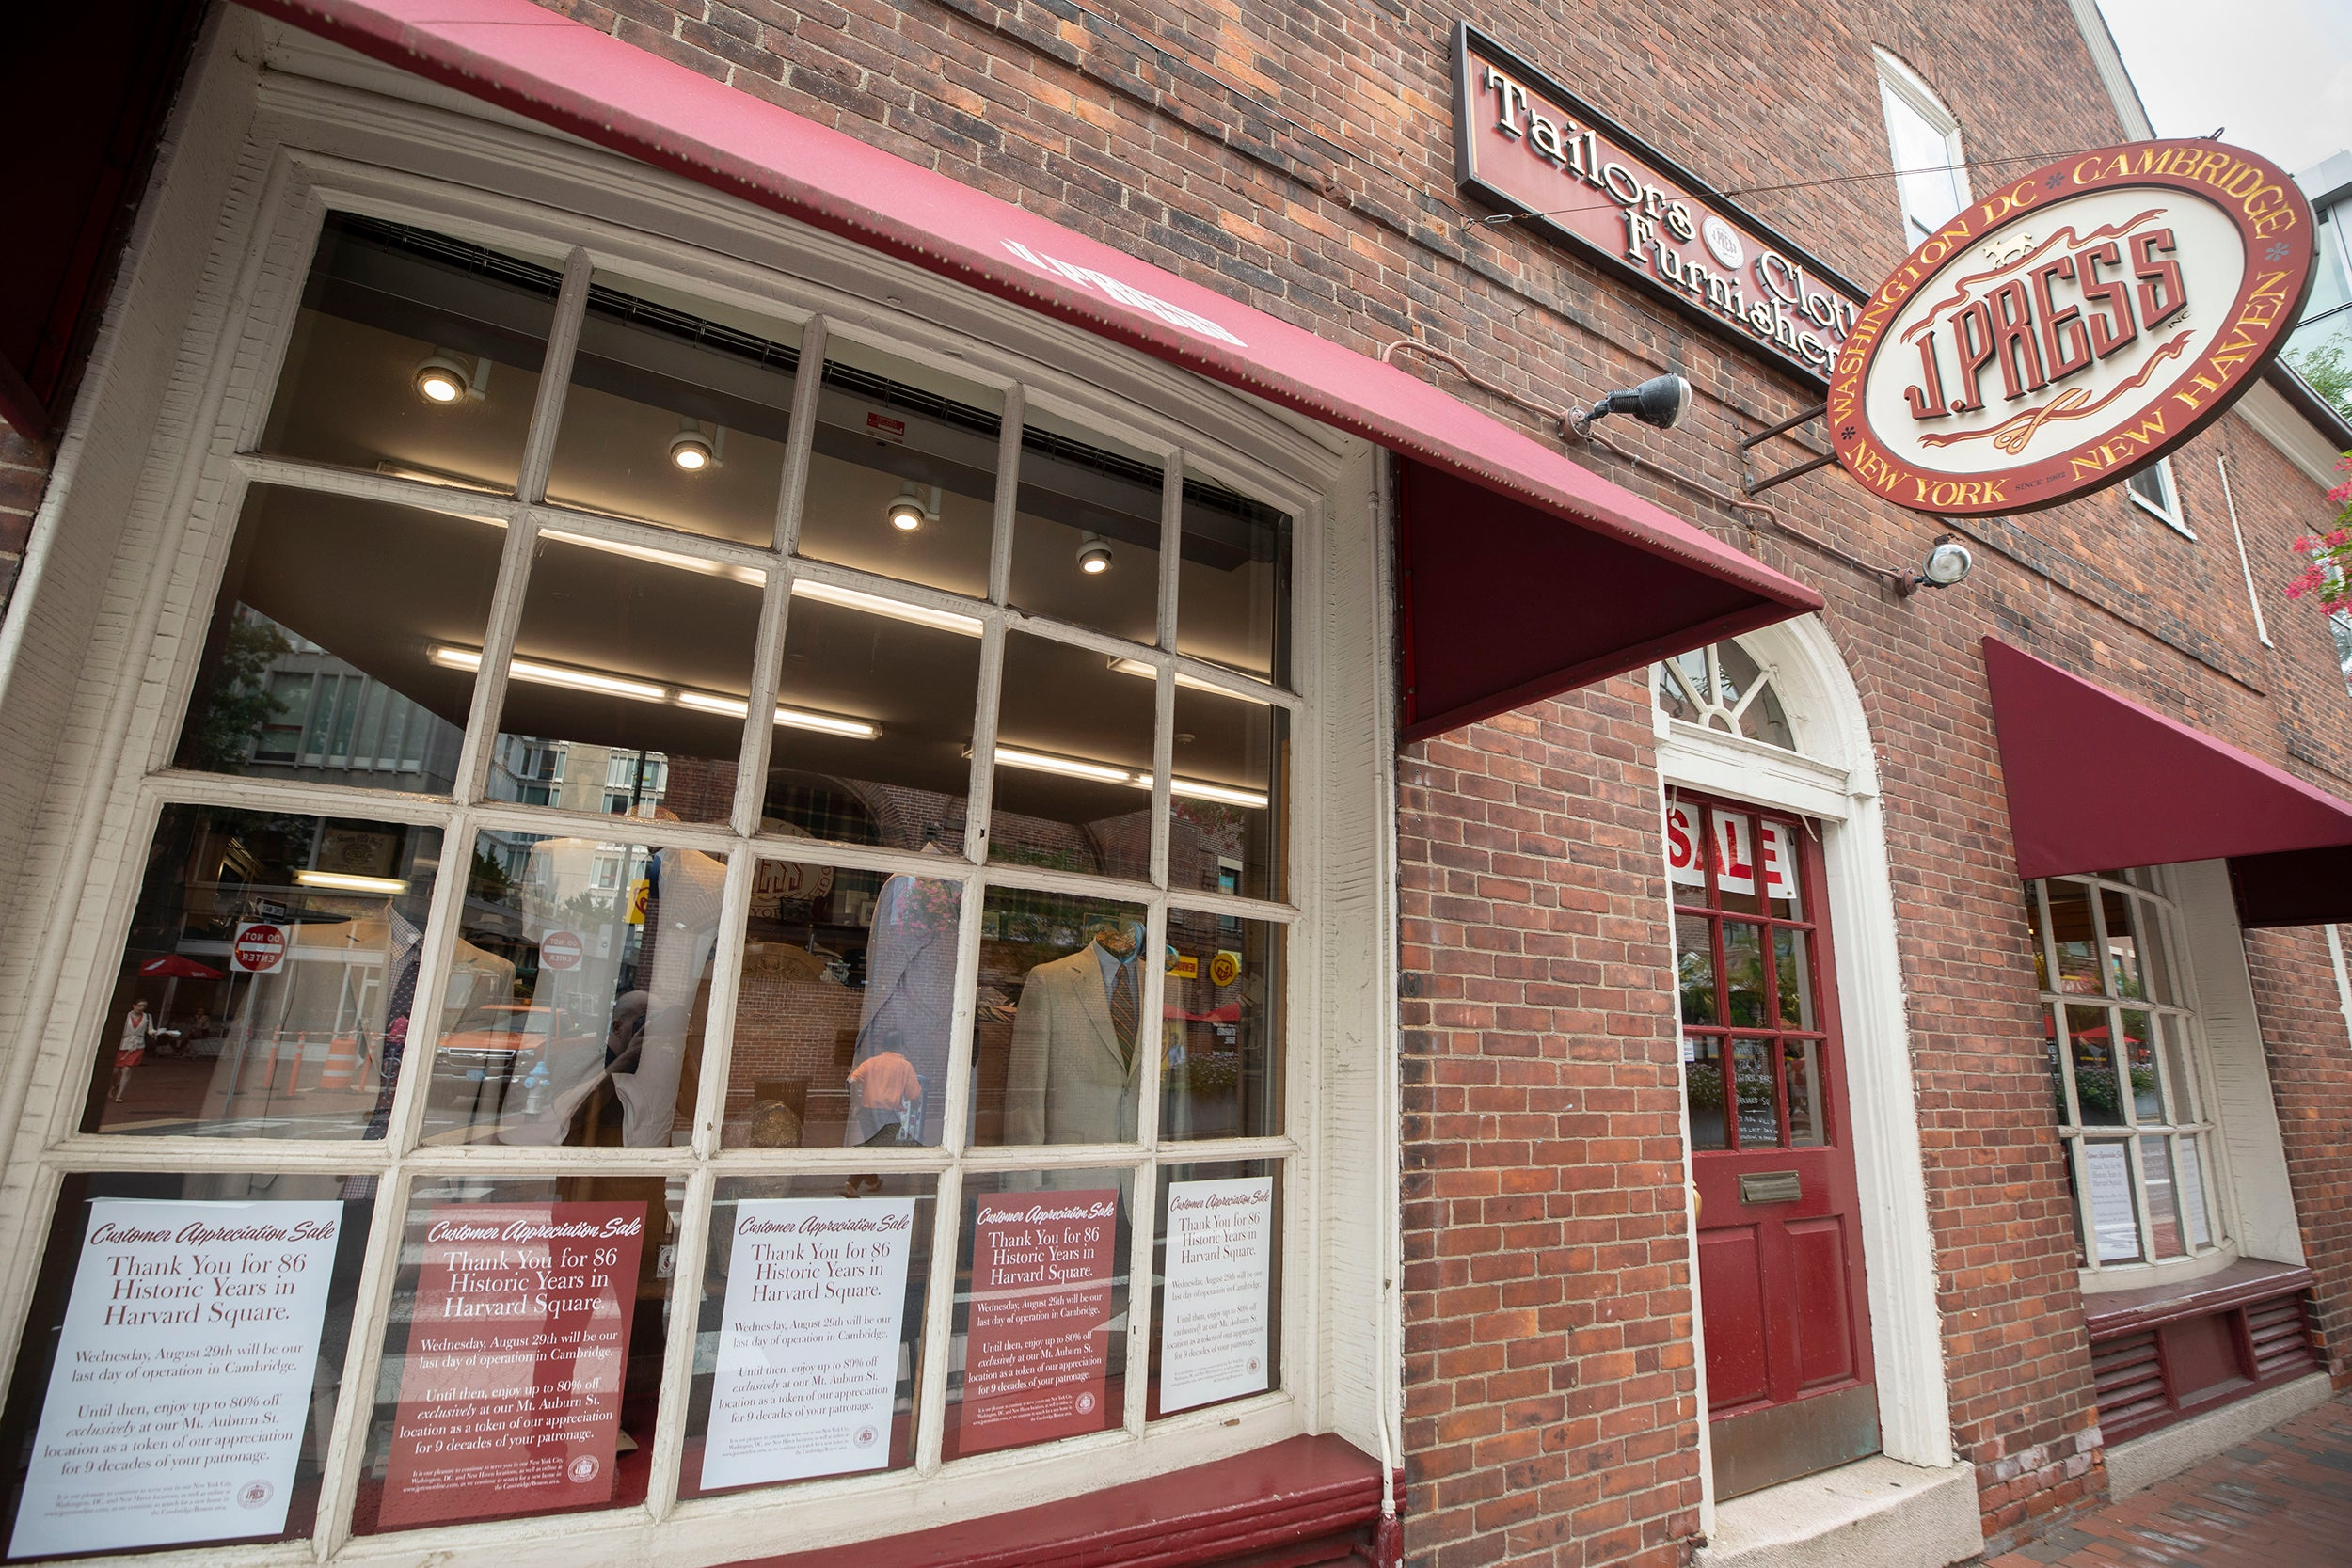 J. Press, one of the originators and last bastions of Ivy League style, will be closing its Harvard Square men's store on Mount Auburn Street.